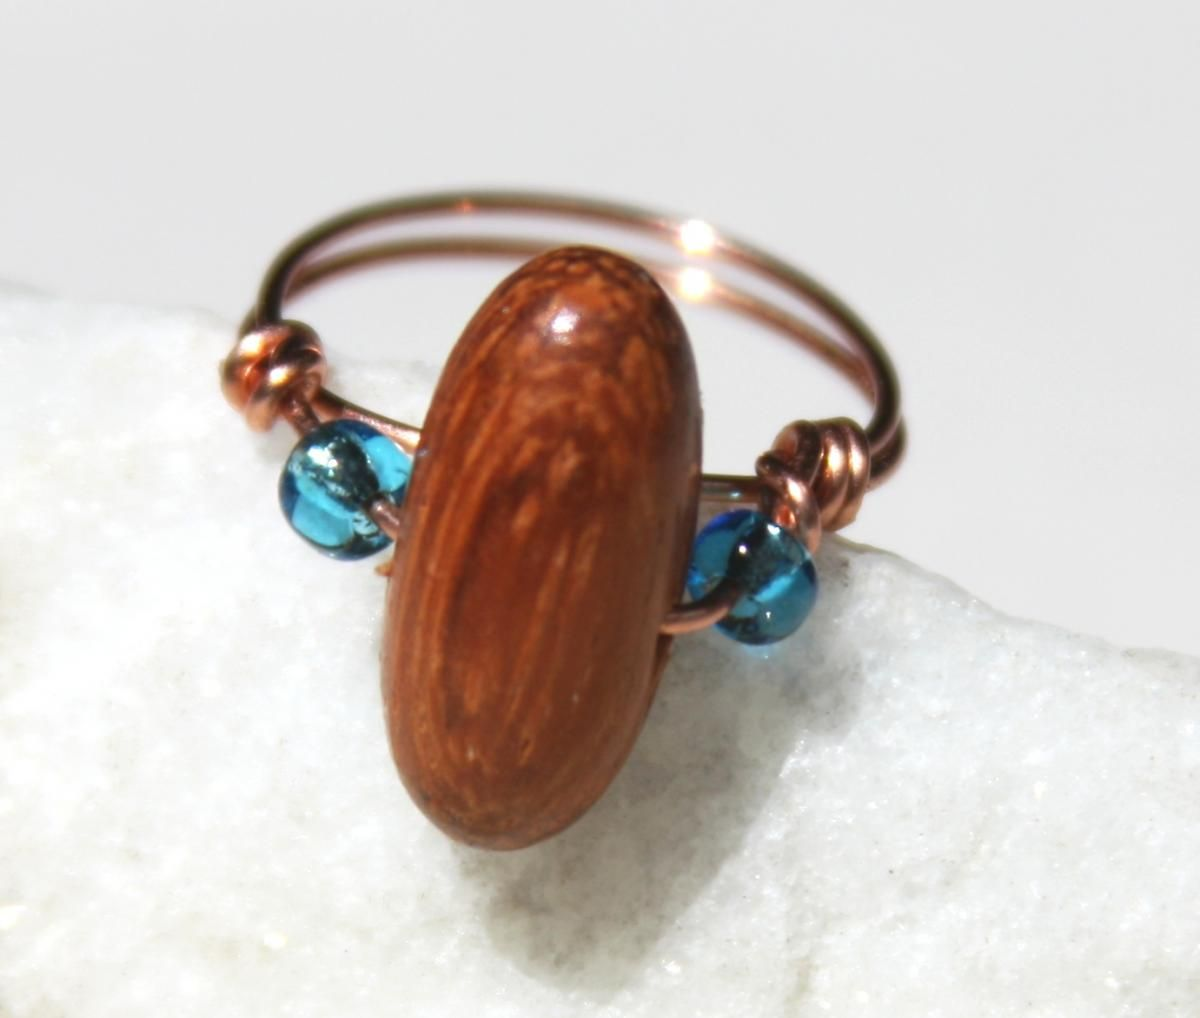 Copper Ring with a Wood and Glass Beads